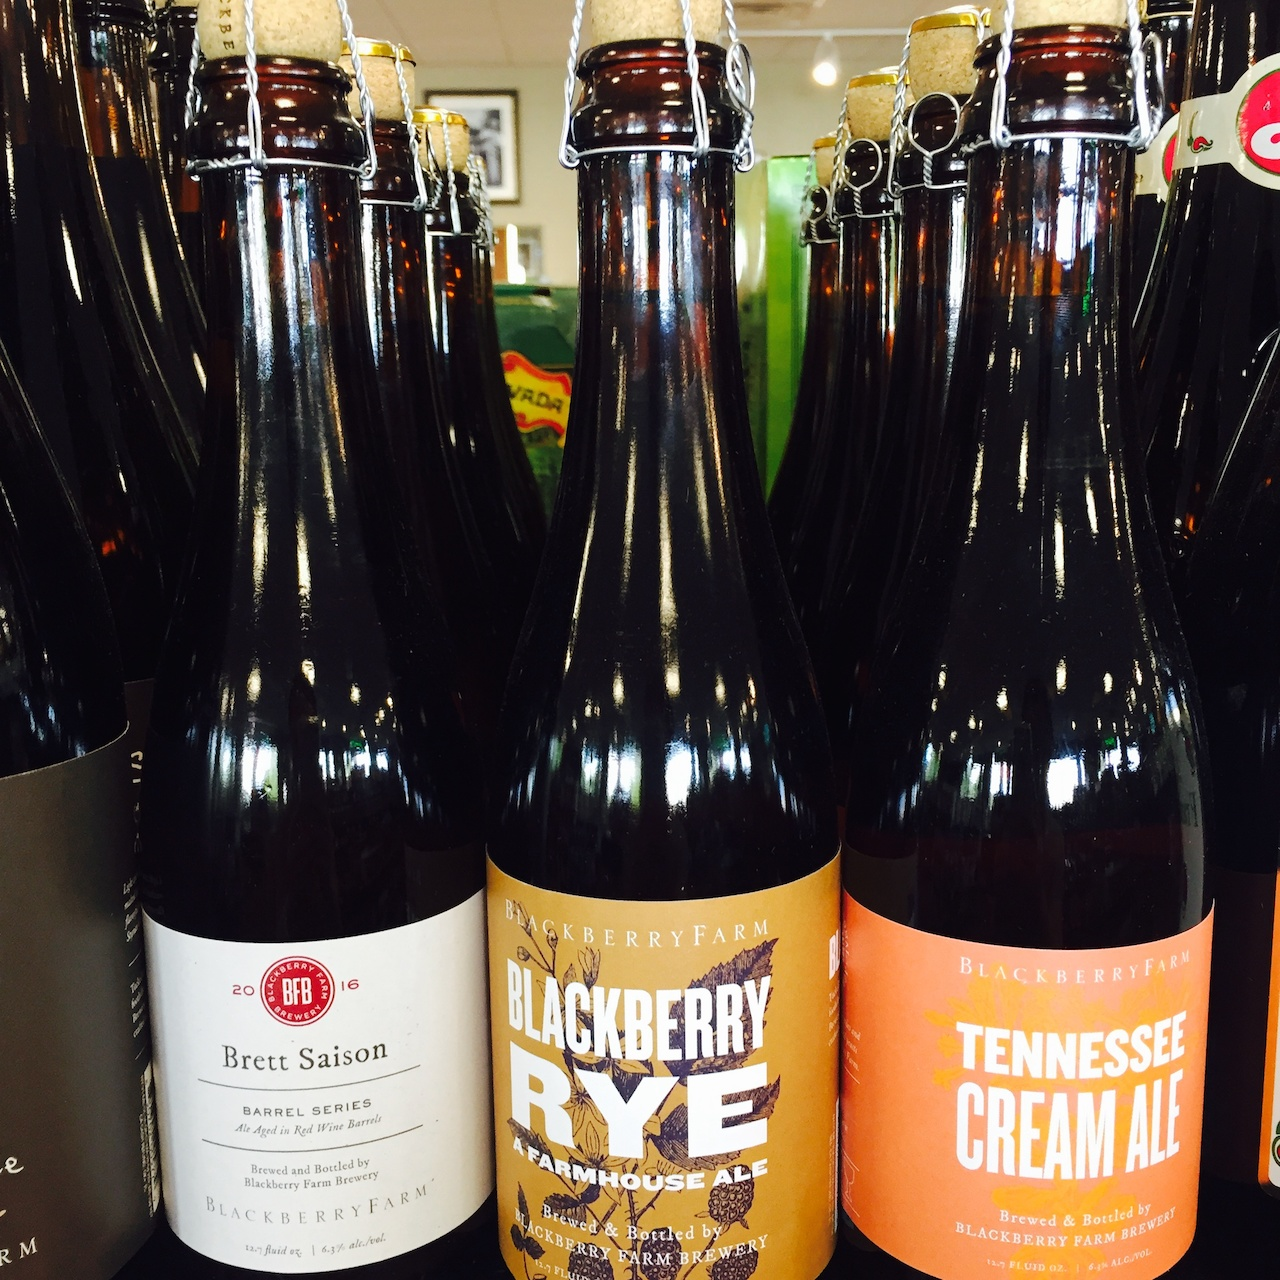 Brett Saison, Blackberry Rye and Tennessee Cream Ale, $8.49 each at Buster's Liquors and Wines